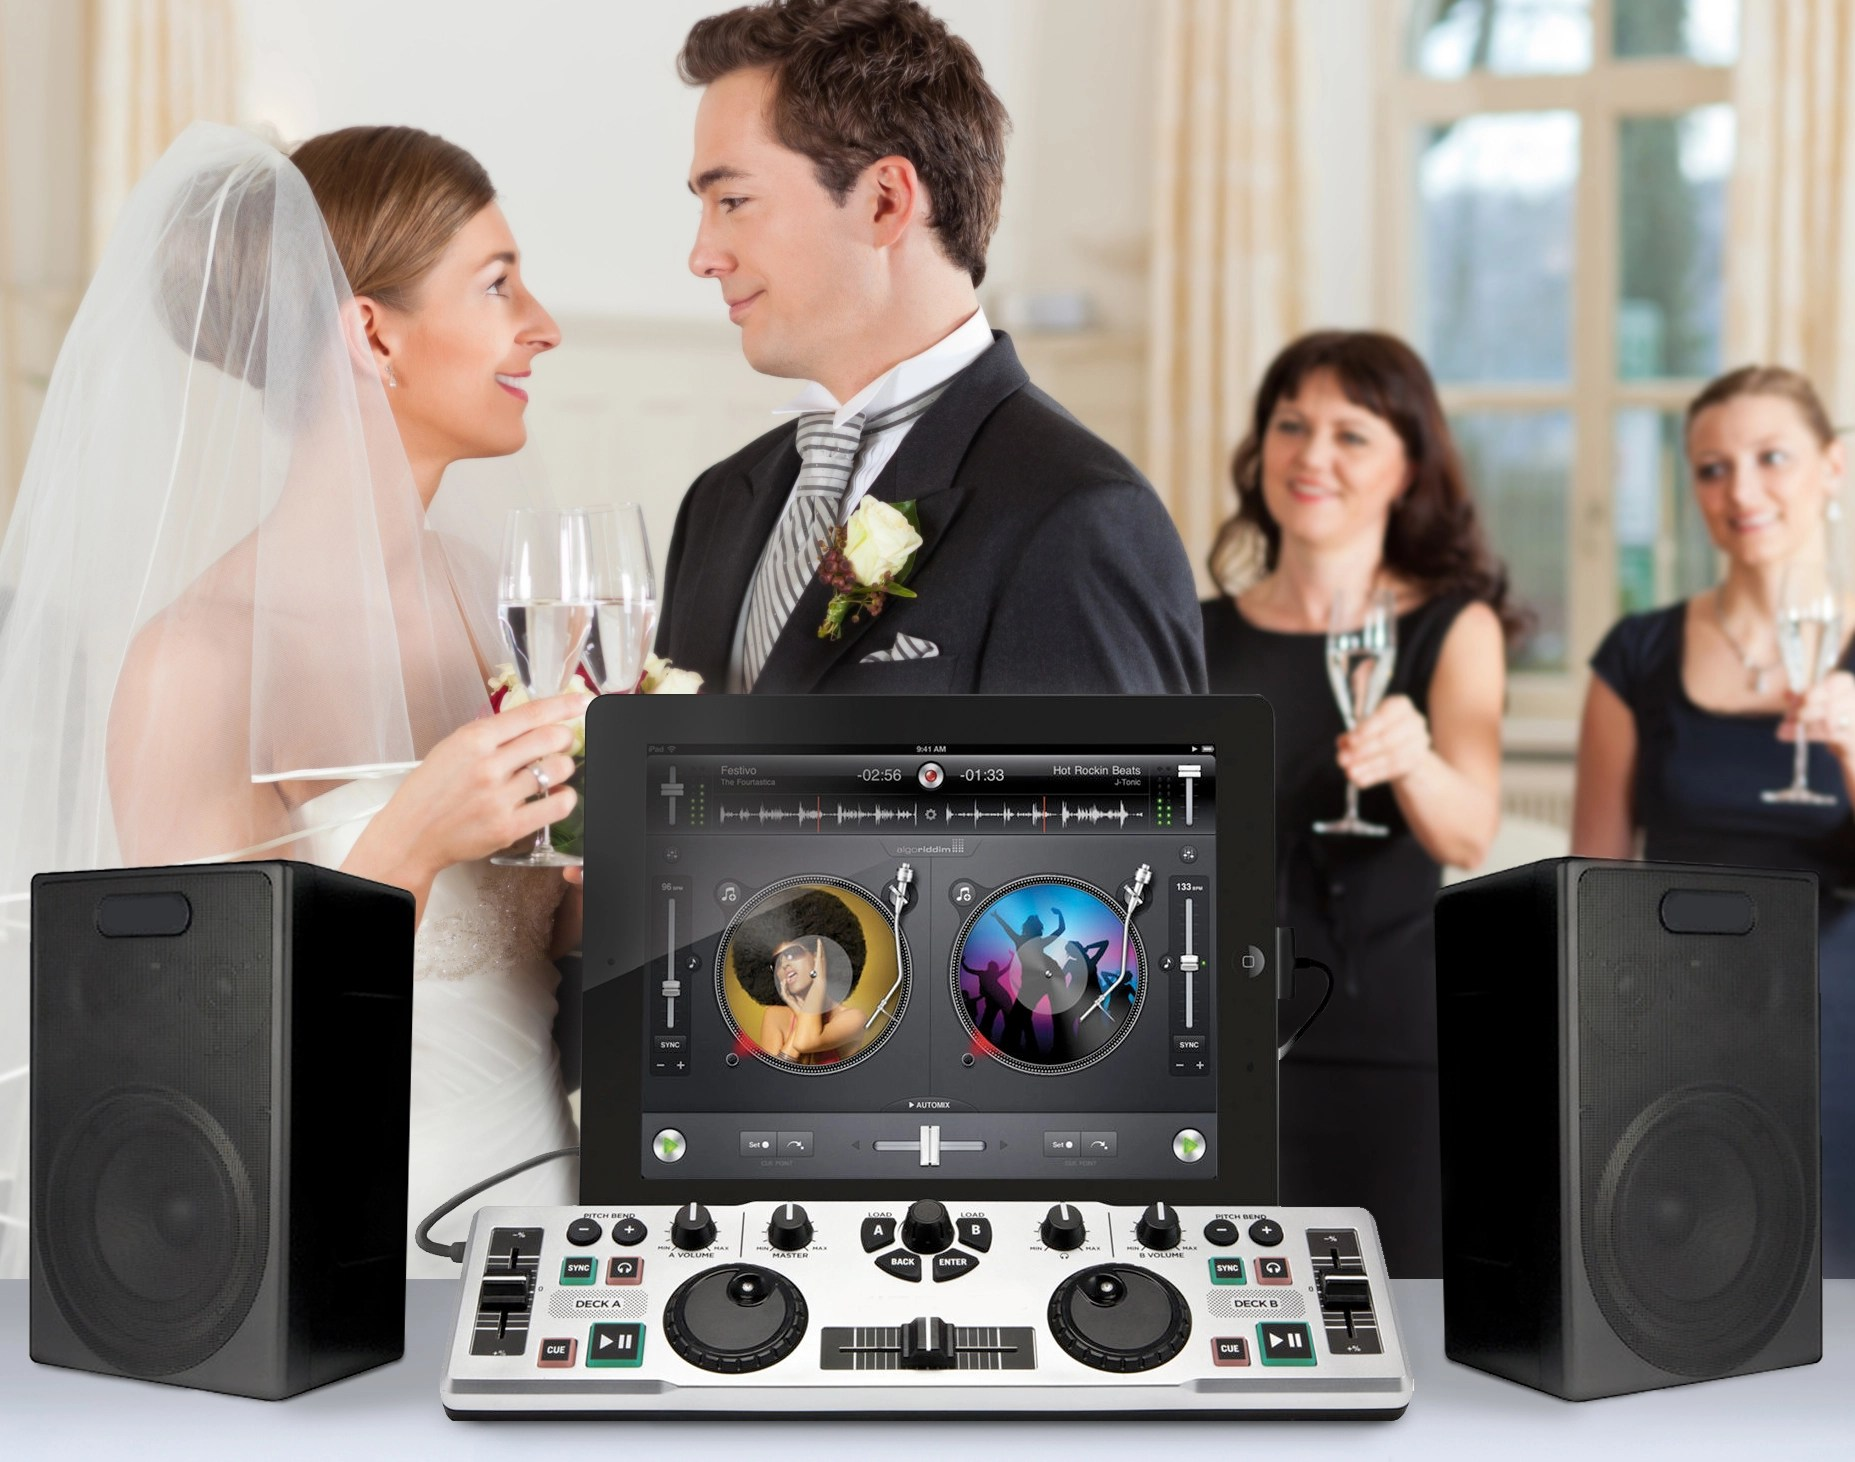 Bad Dj Set B Andh Wedding Guide Do It Yourself Dj Systems B Andh Explora